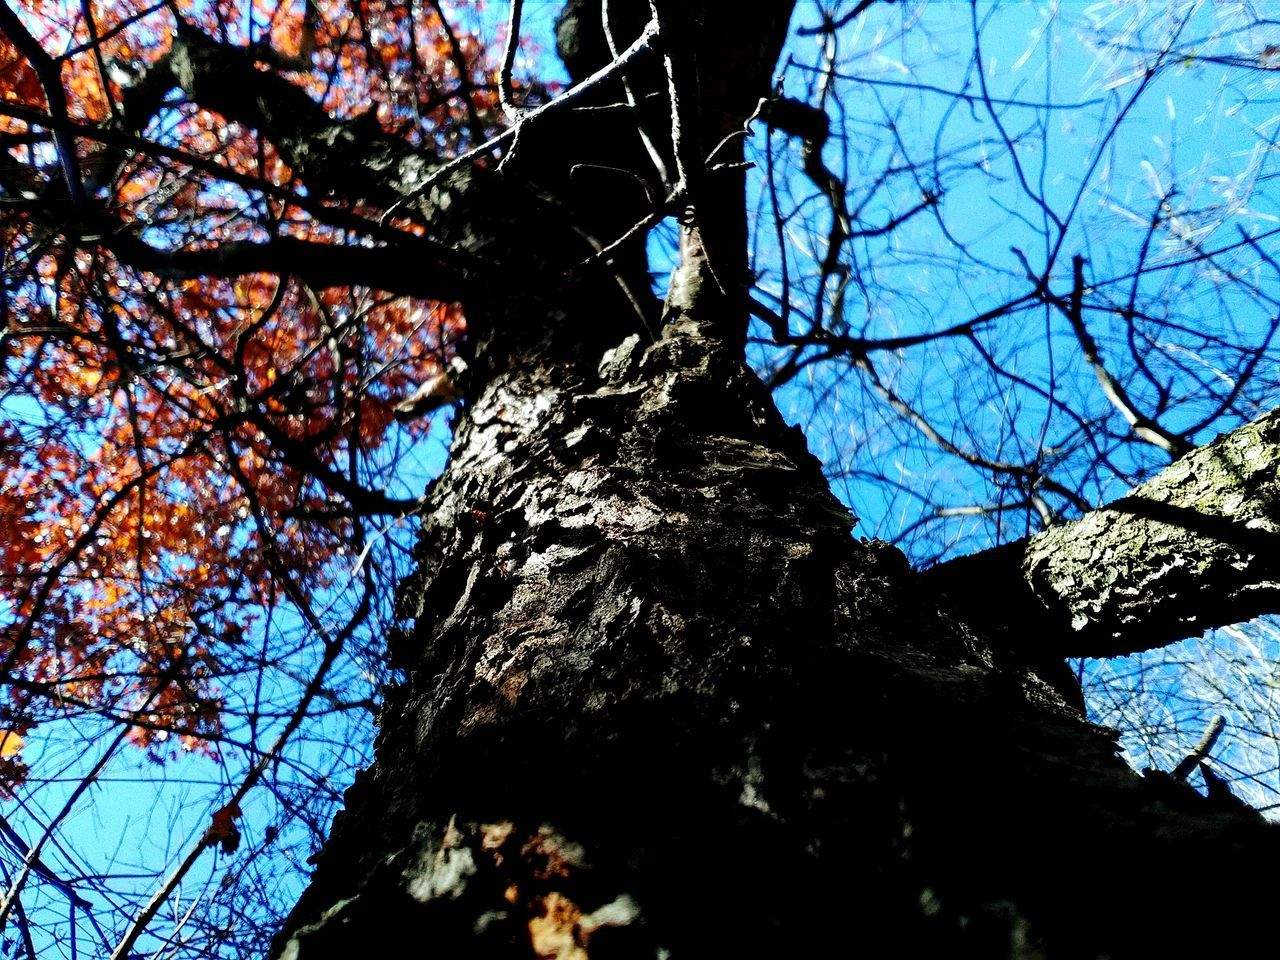 Tree Low Angle View Nature Branch Sky Growth Beauty In Nature Outdoors Tree Trunk No People Tranquility Day HelloEyeEm EyeEm Nature Lover Check This Out 😊 Outdoor Pictures My Photography 2016♡ Hello World ✌My View November Mother Nature Is Amazing Growth Walking Around Taking Pictures In The Woods!